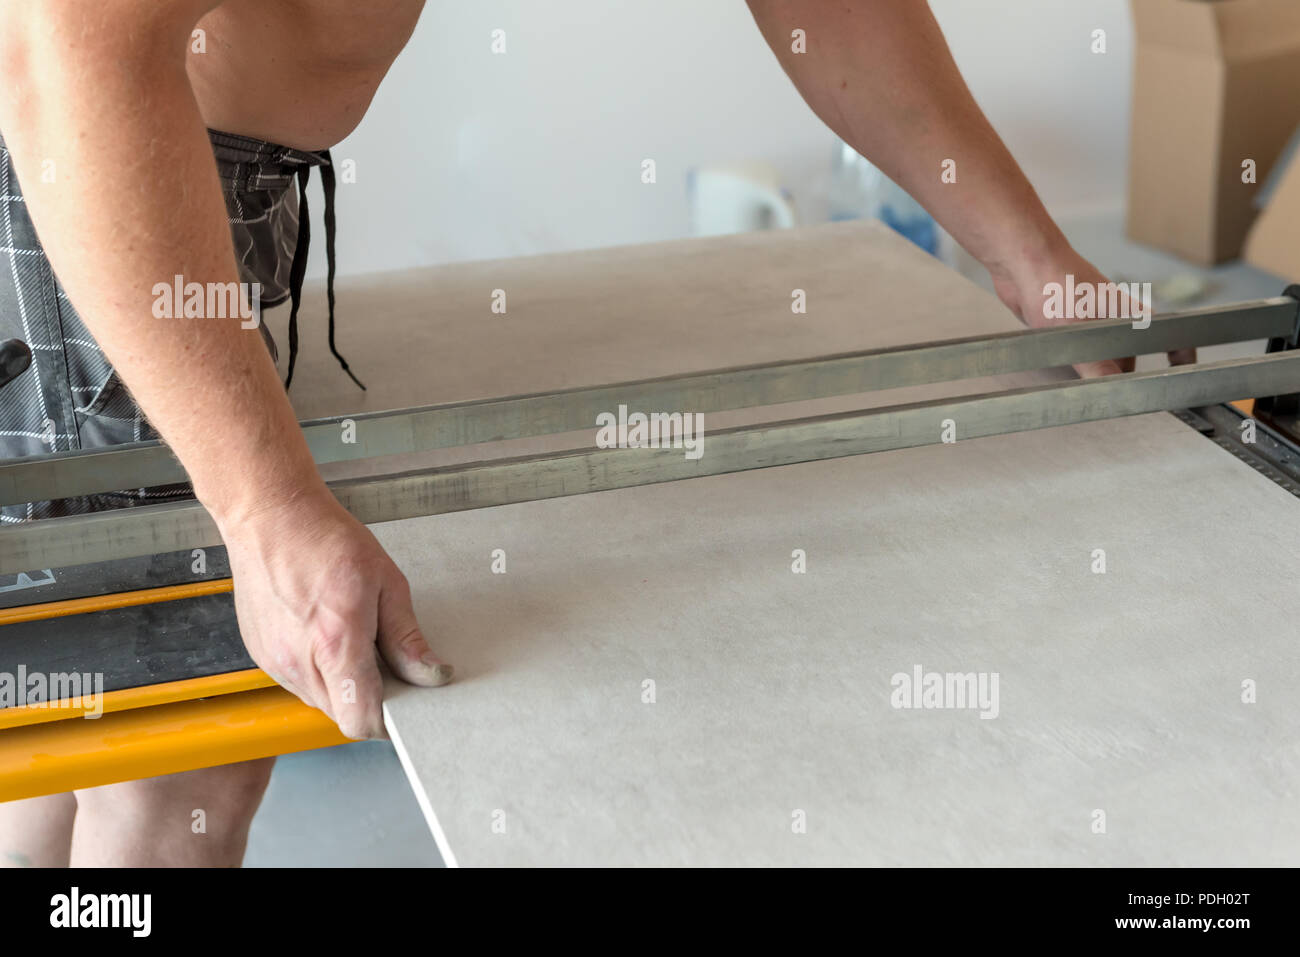 The Man Is Cutting The Floor Tiles Using A Tile Cutter Machine Stock